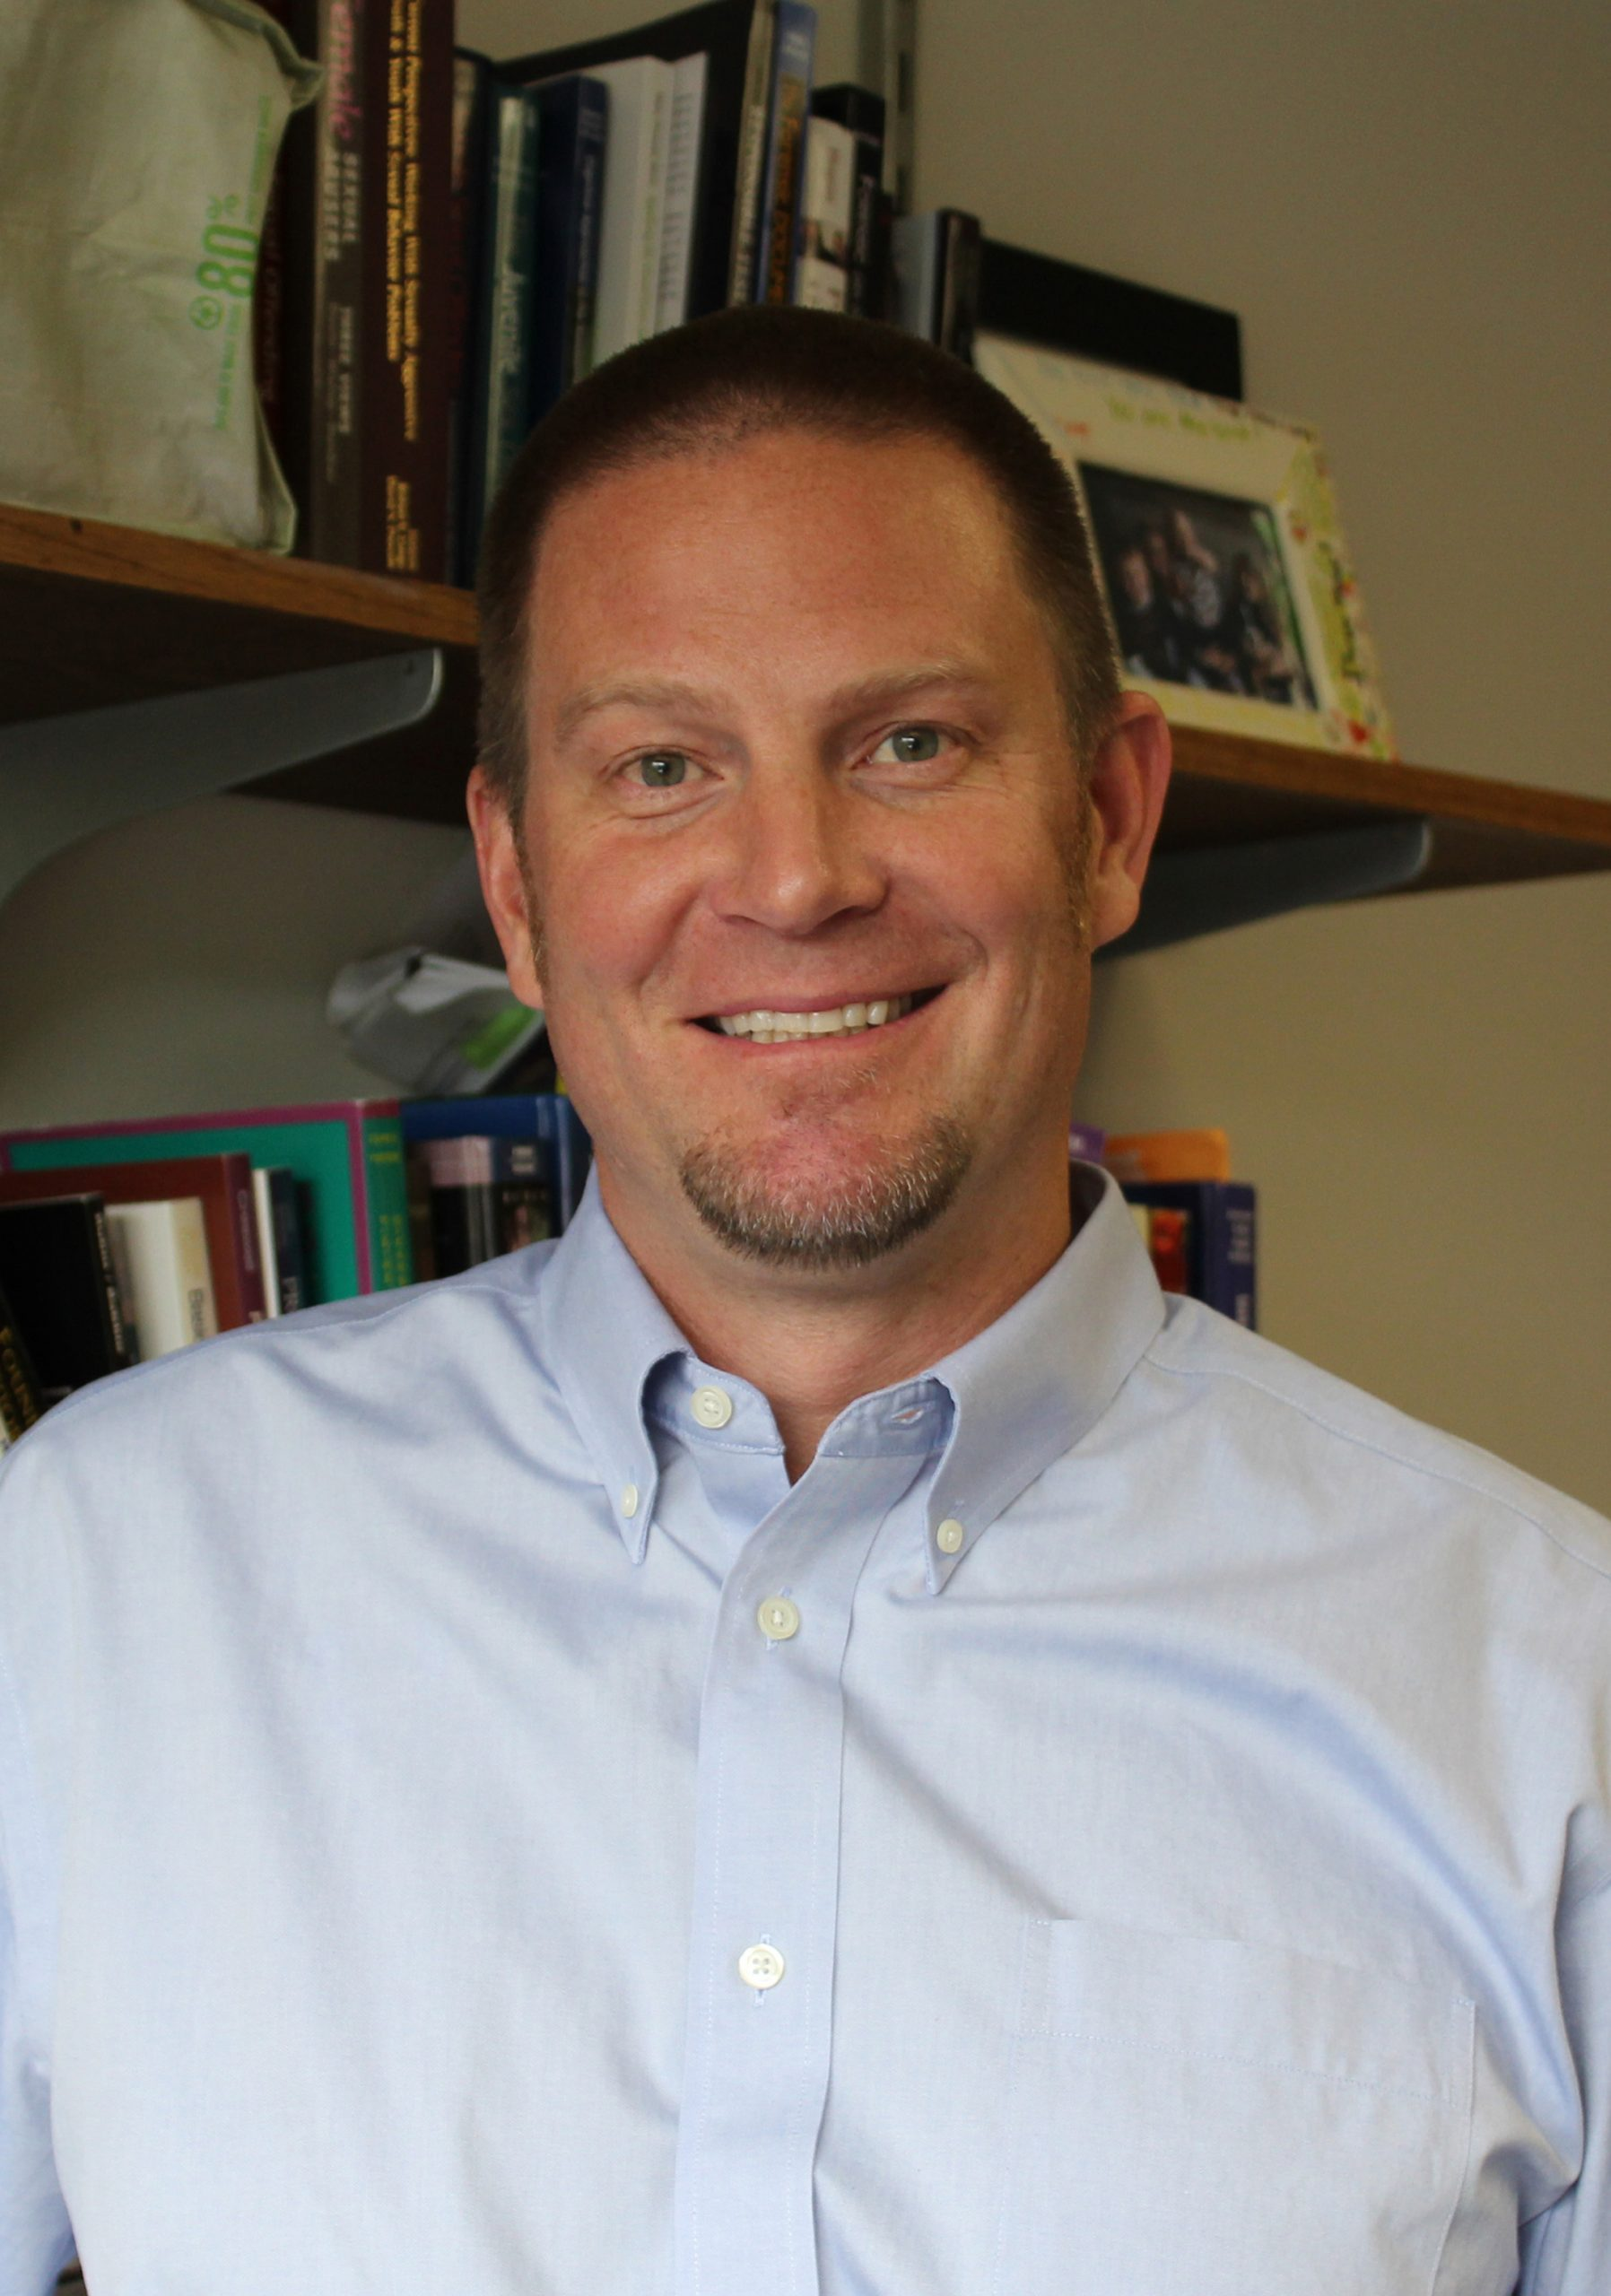 Dr. Rob Butters has been selected to direct the Utah Criminal Justice Center